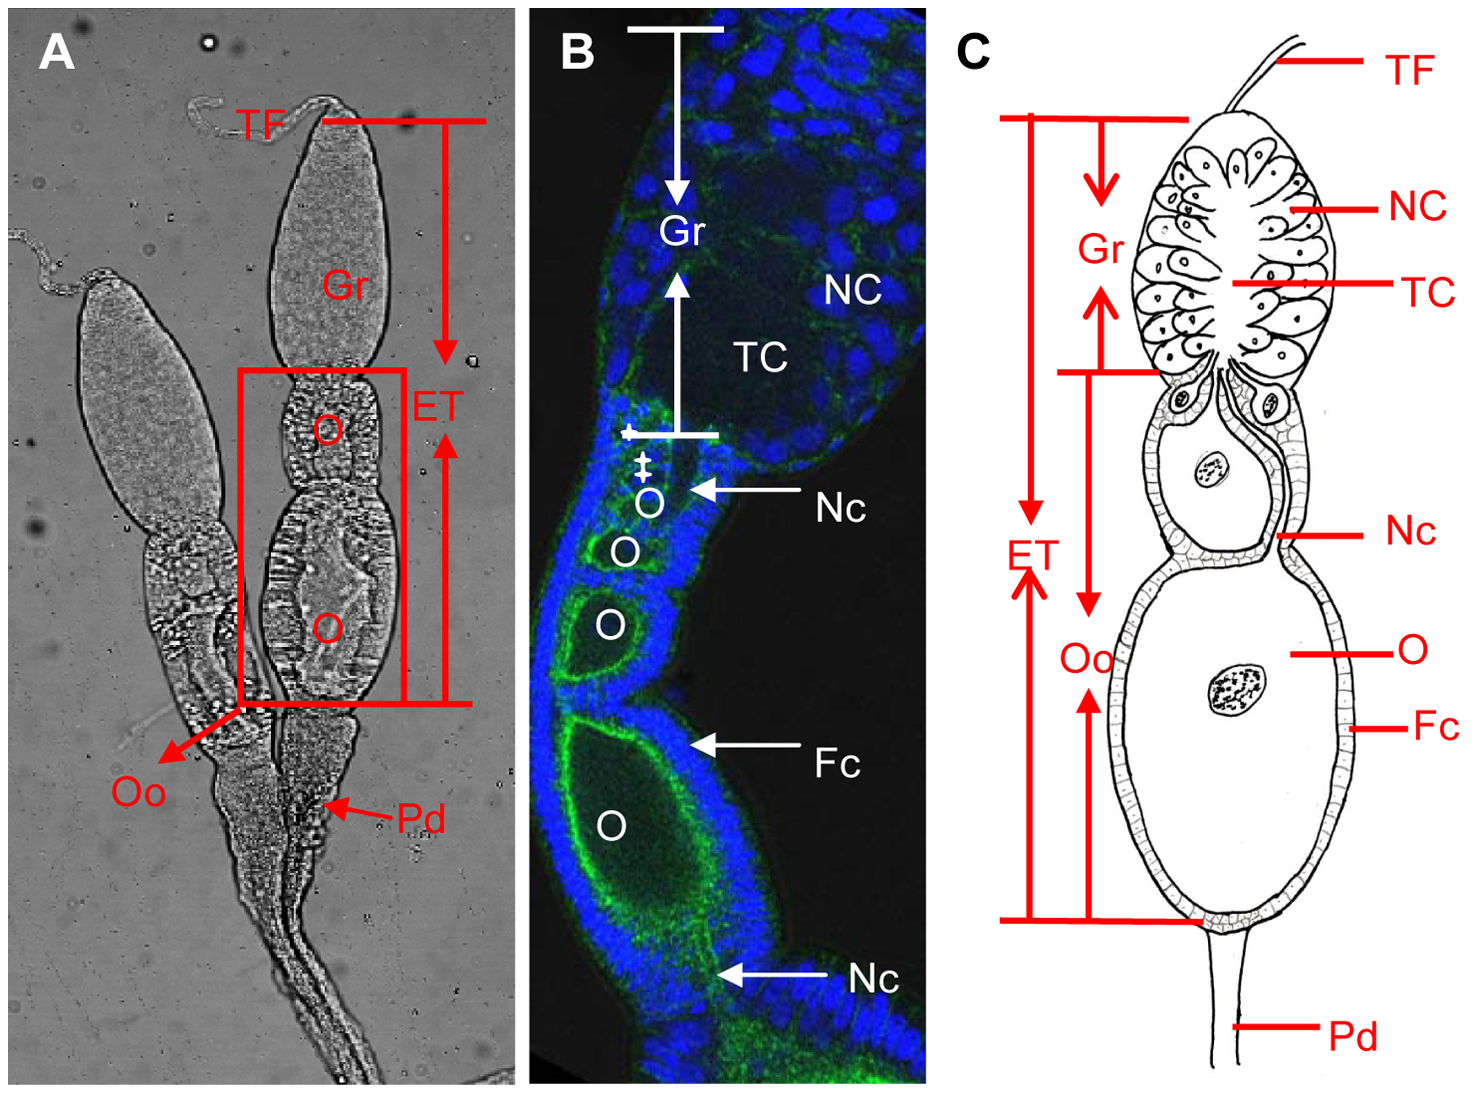 Ovary structure of <i>Laodelphax striatellus</i>.